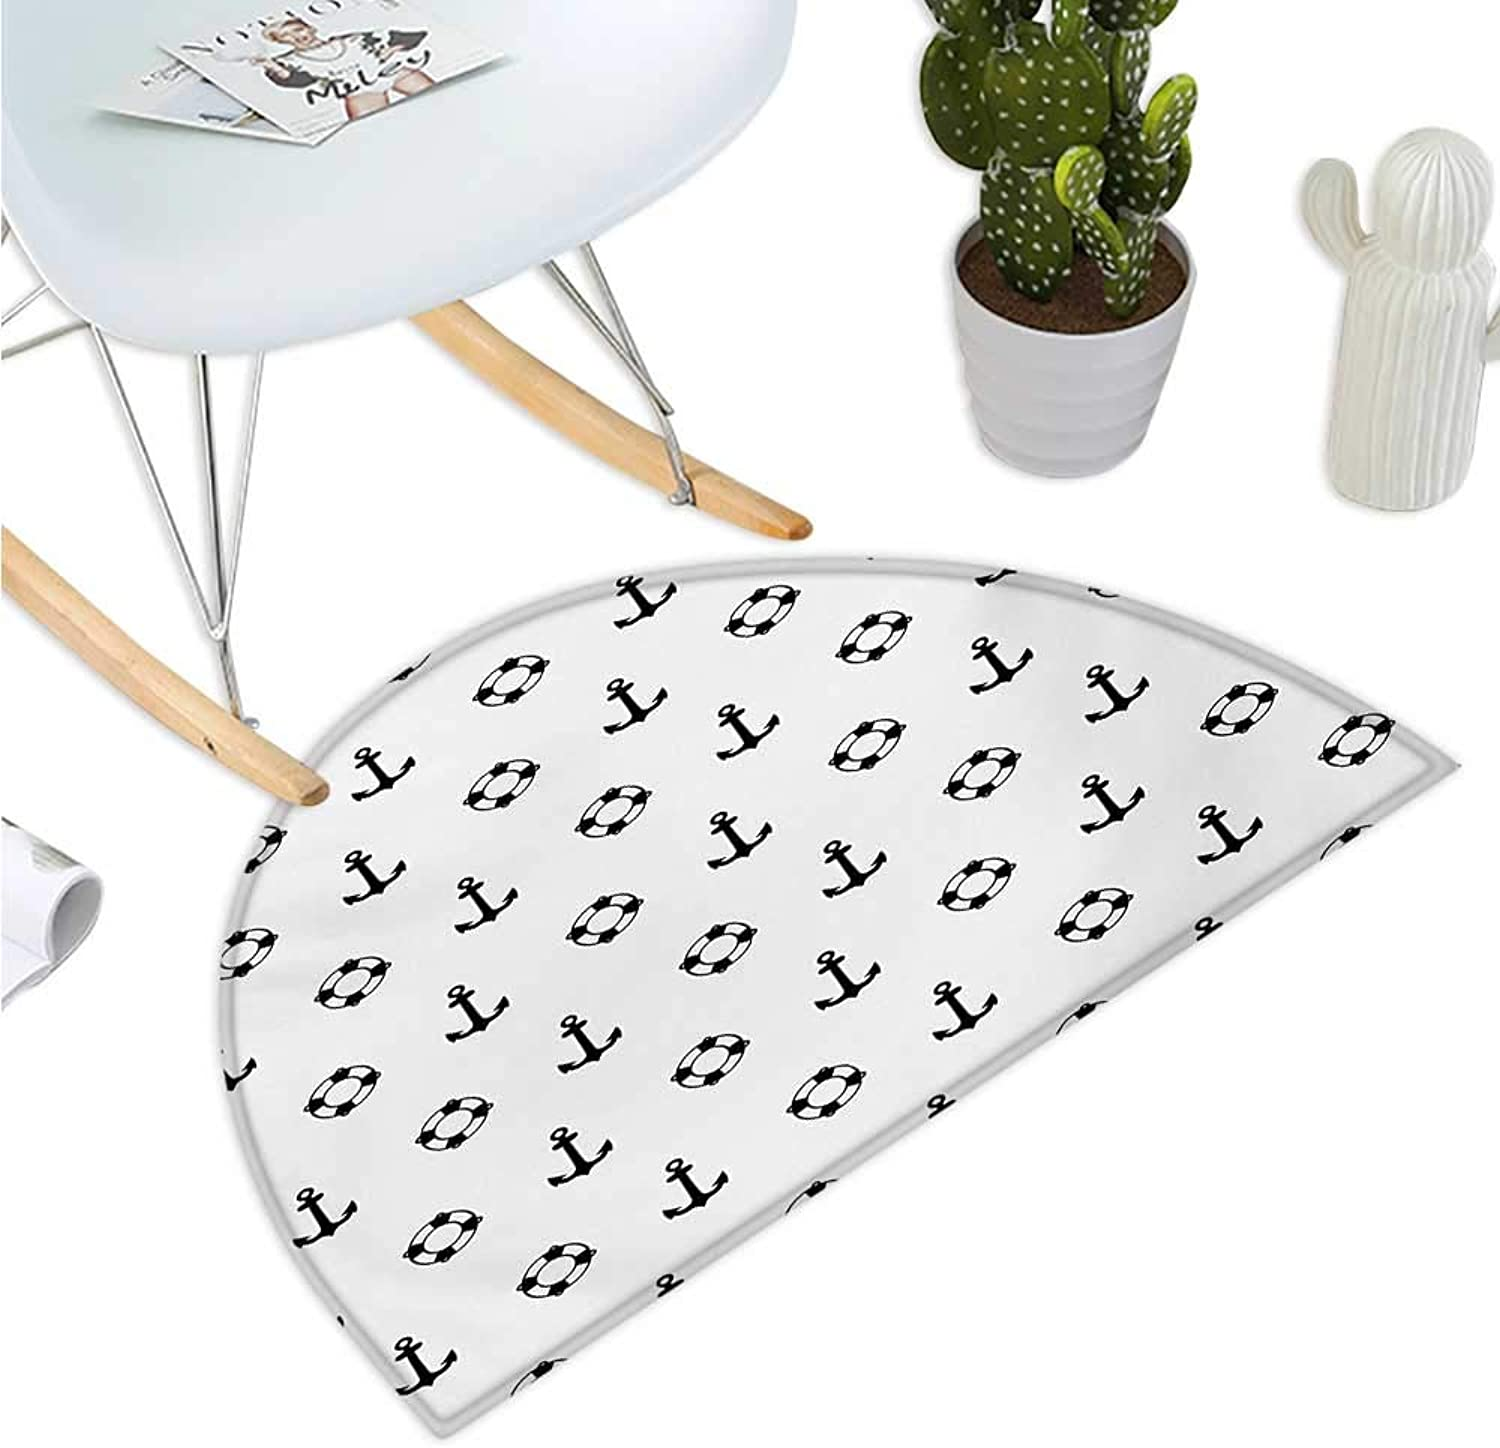 Nautical Semicircle Doormat Maritime Theme Objects Anchors and Lifebuoys Pattern Navy Ocean High Seas Halfmoon doormats H 35.4  xD 53.1  Black and White